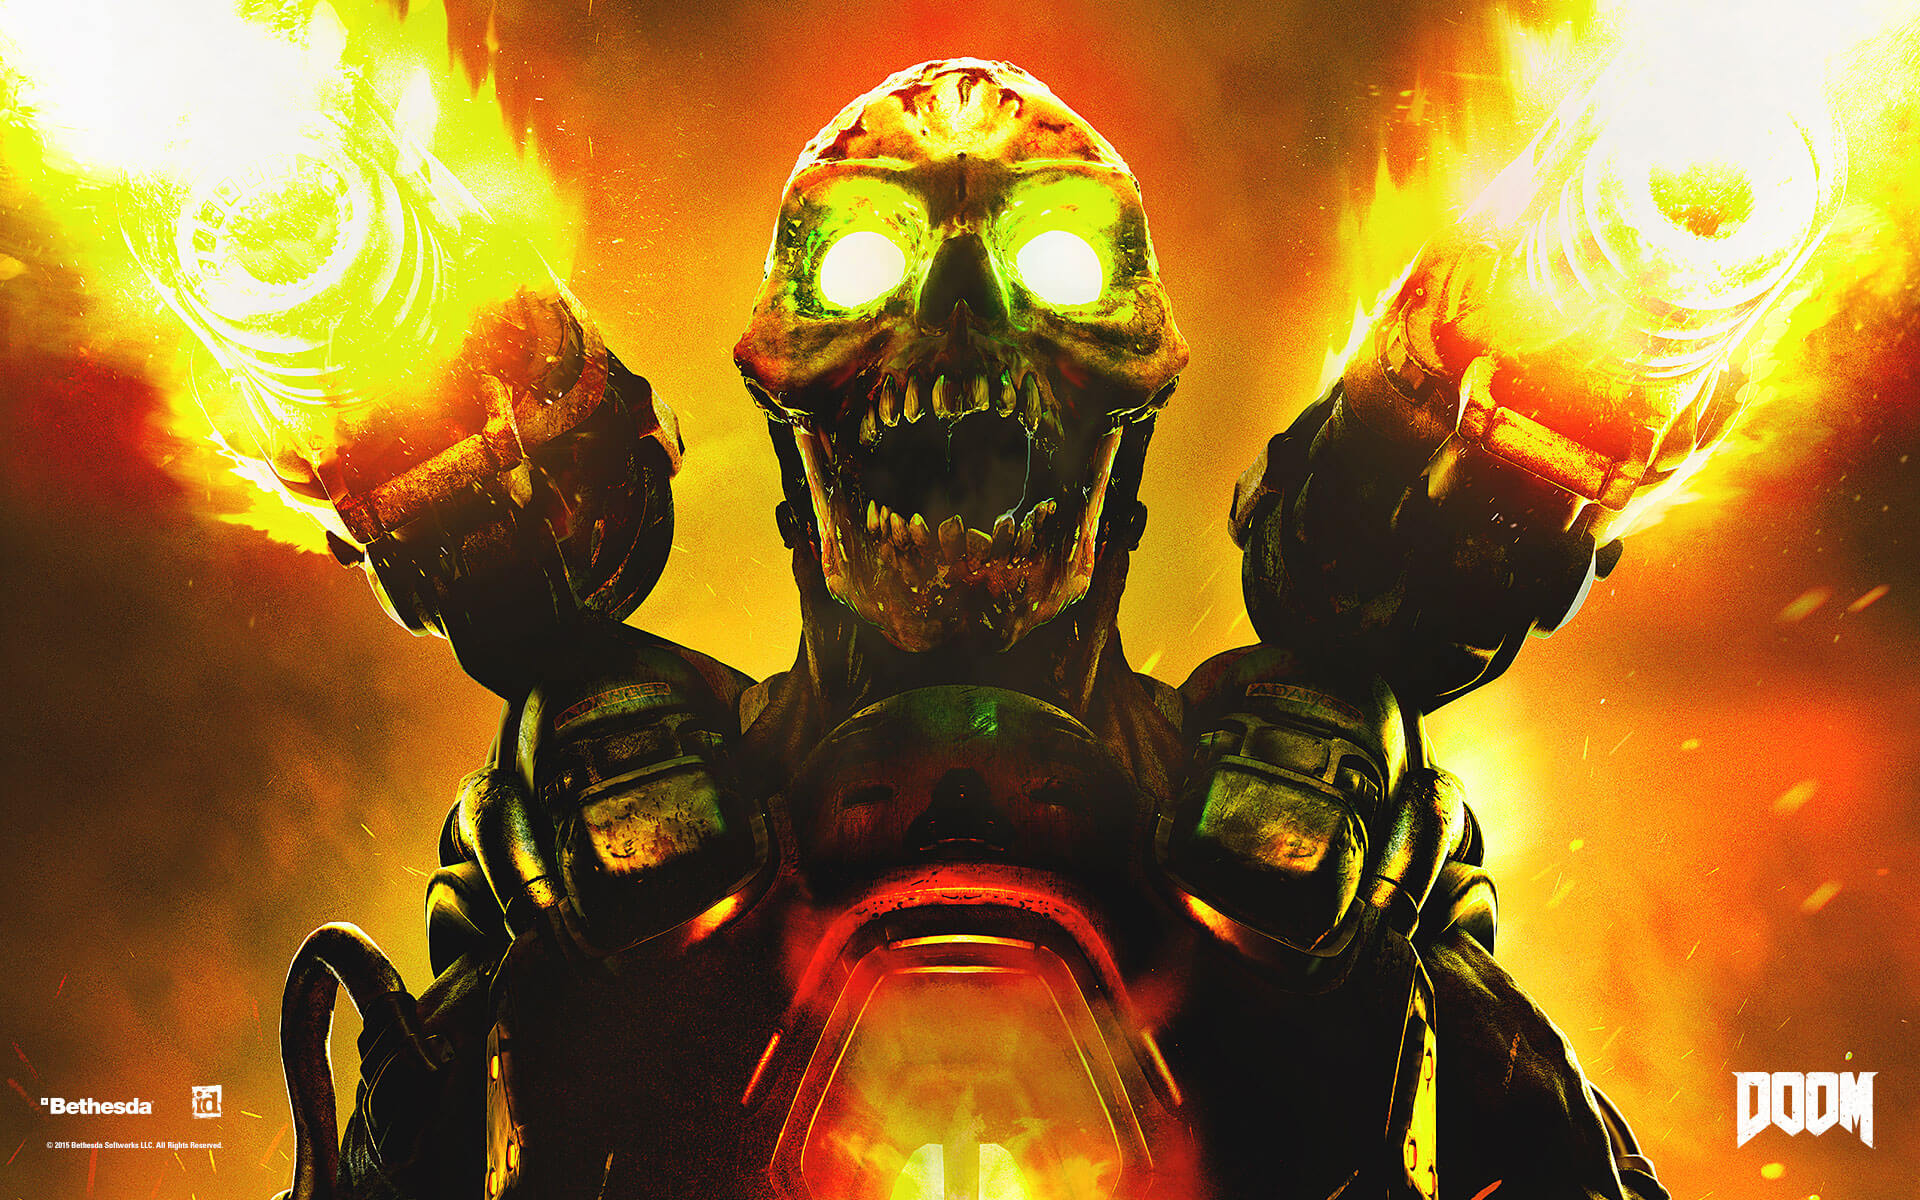 The Latest DOOM Trailer Will Blow You Away